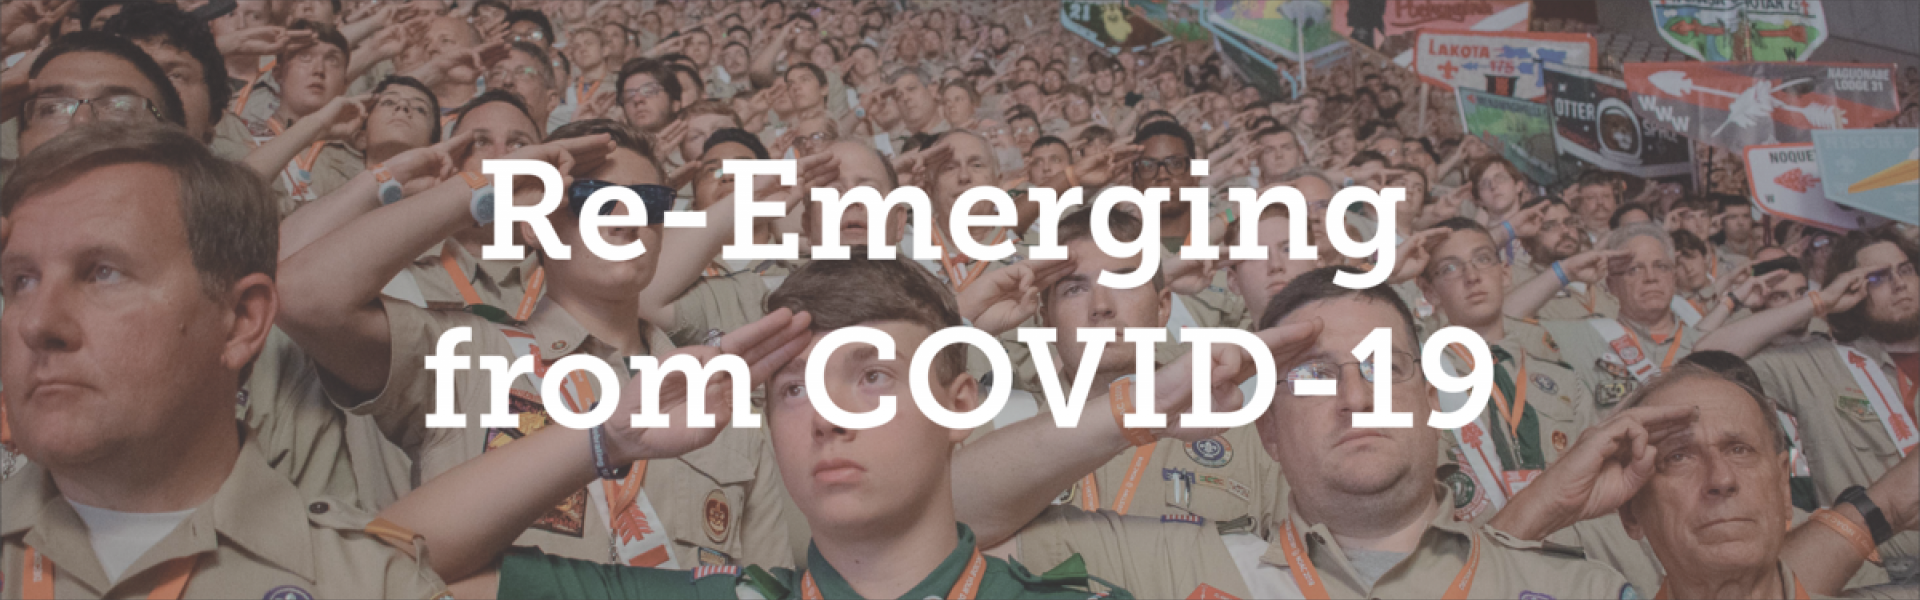 Re-Emerging from COVID-19